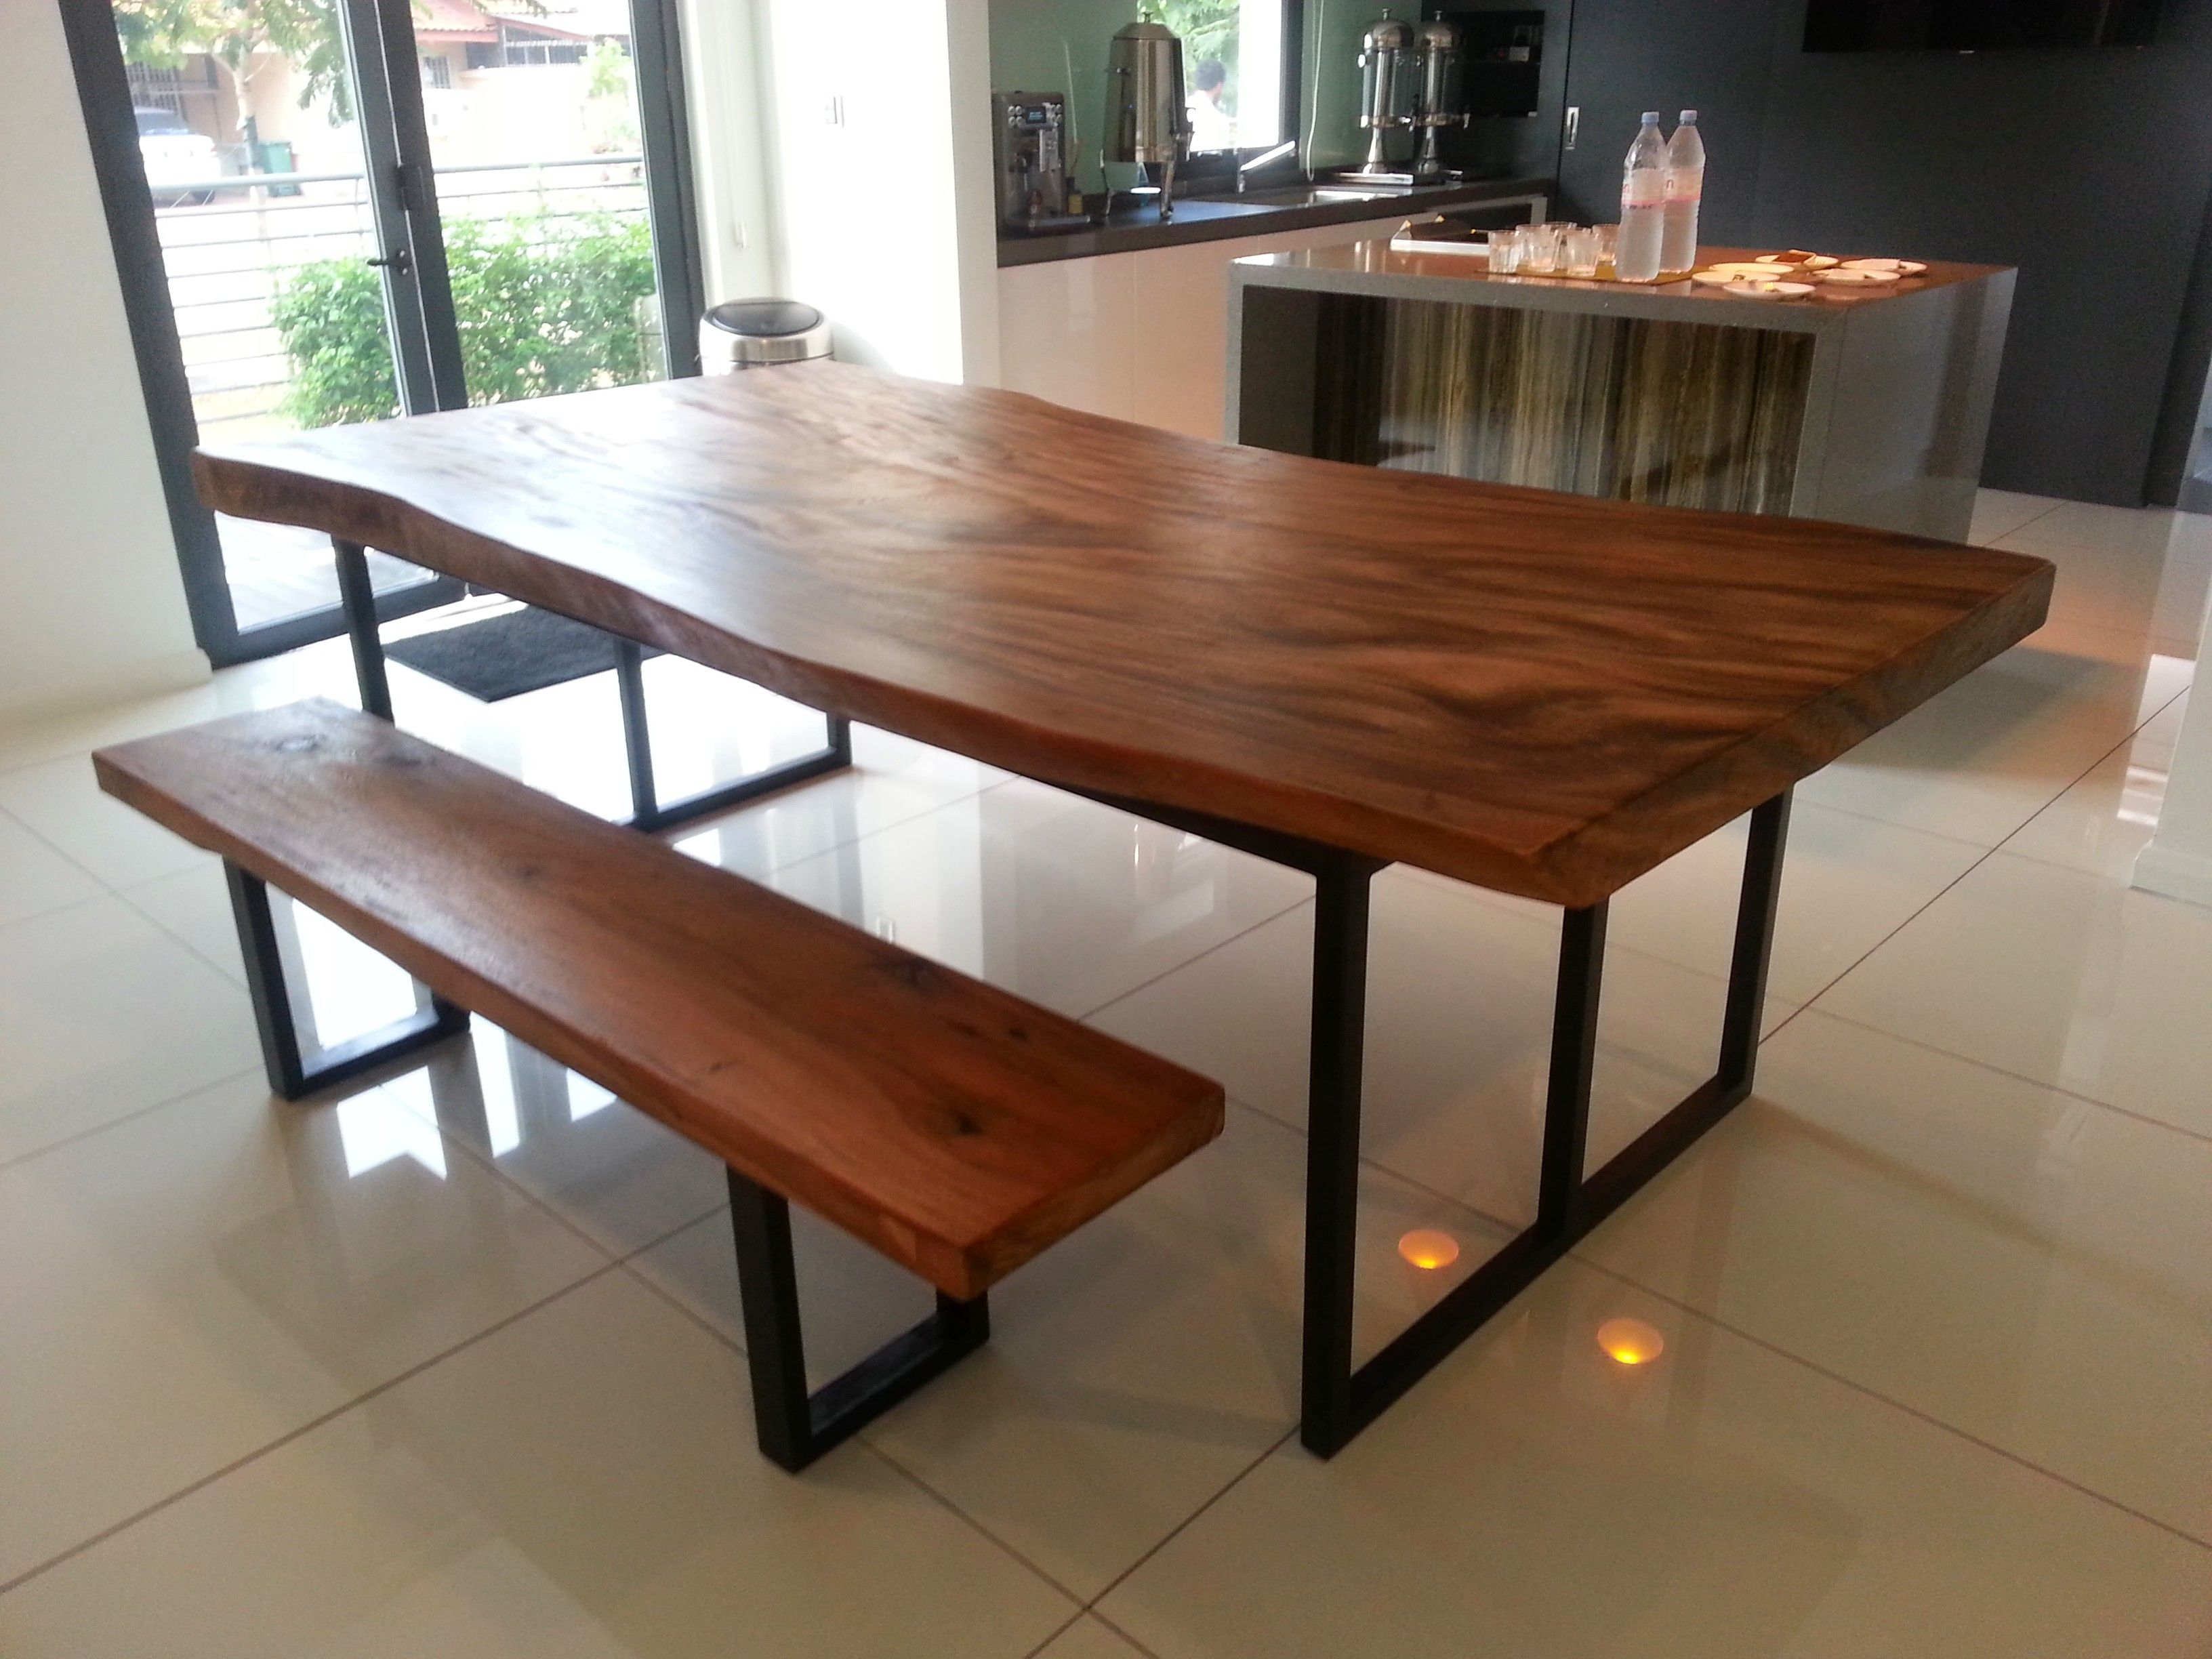 Suar Wood Dining Table with metal Legs 220x100x78cm Suar  : 5670aacbe78126900d62544c37d54fa6 from www.pinterest.com size 3264 x 2448 jpeg 1020kB